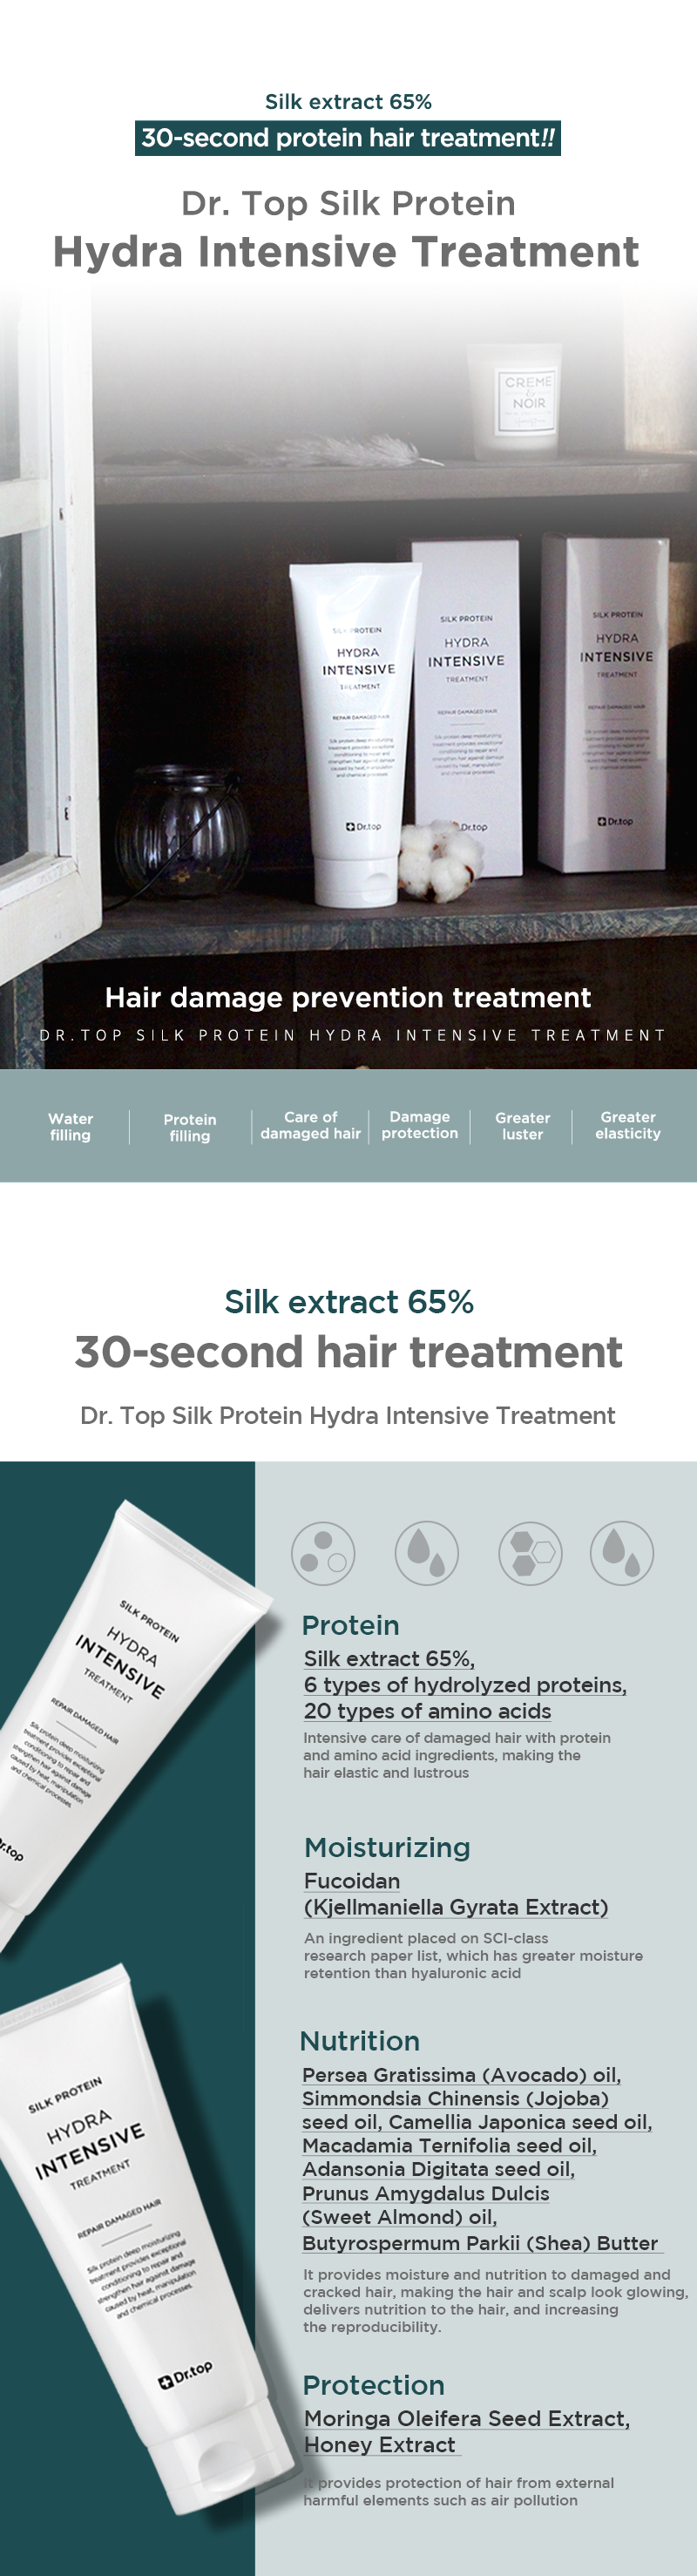 DR. TOP SILK PROTEIN HYDRA INTENSIVE TREATMENT